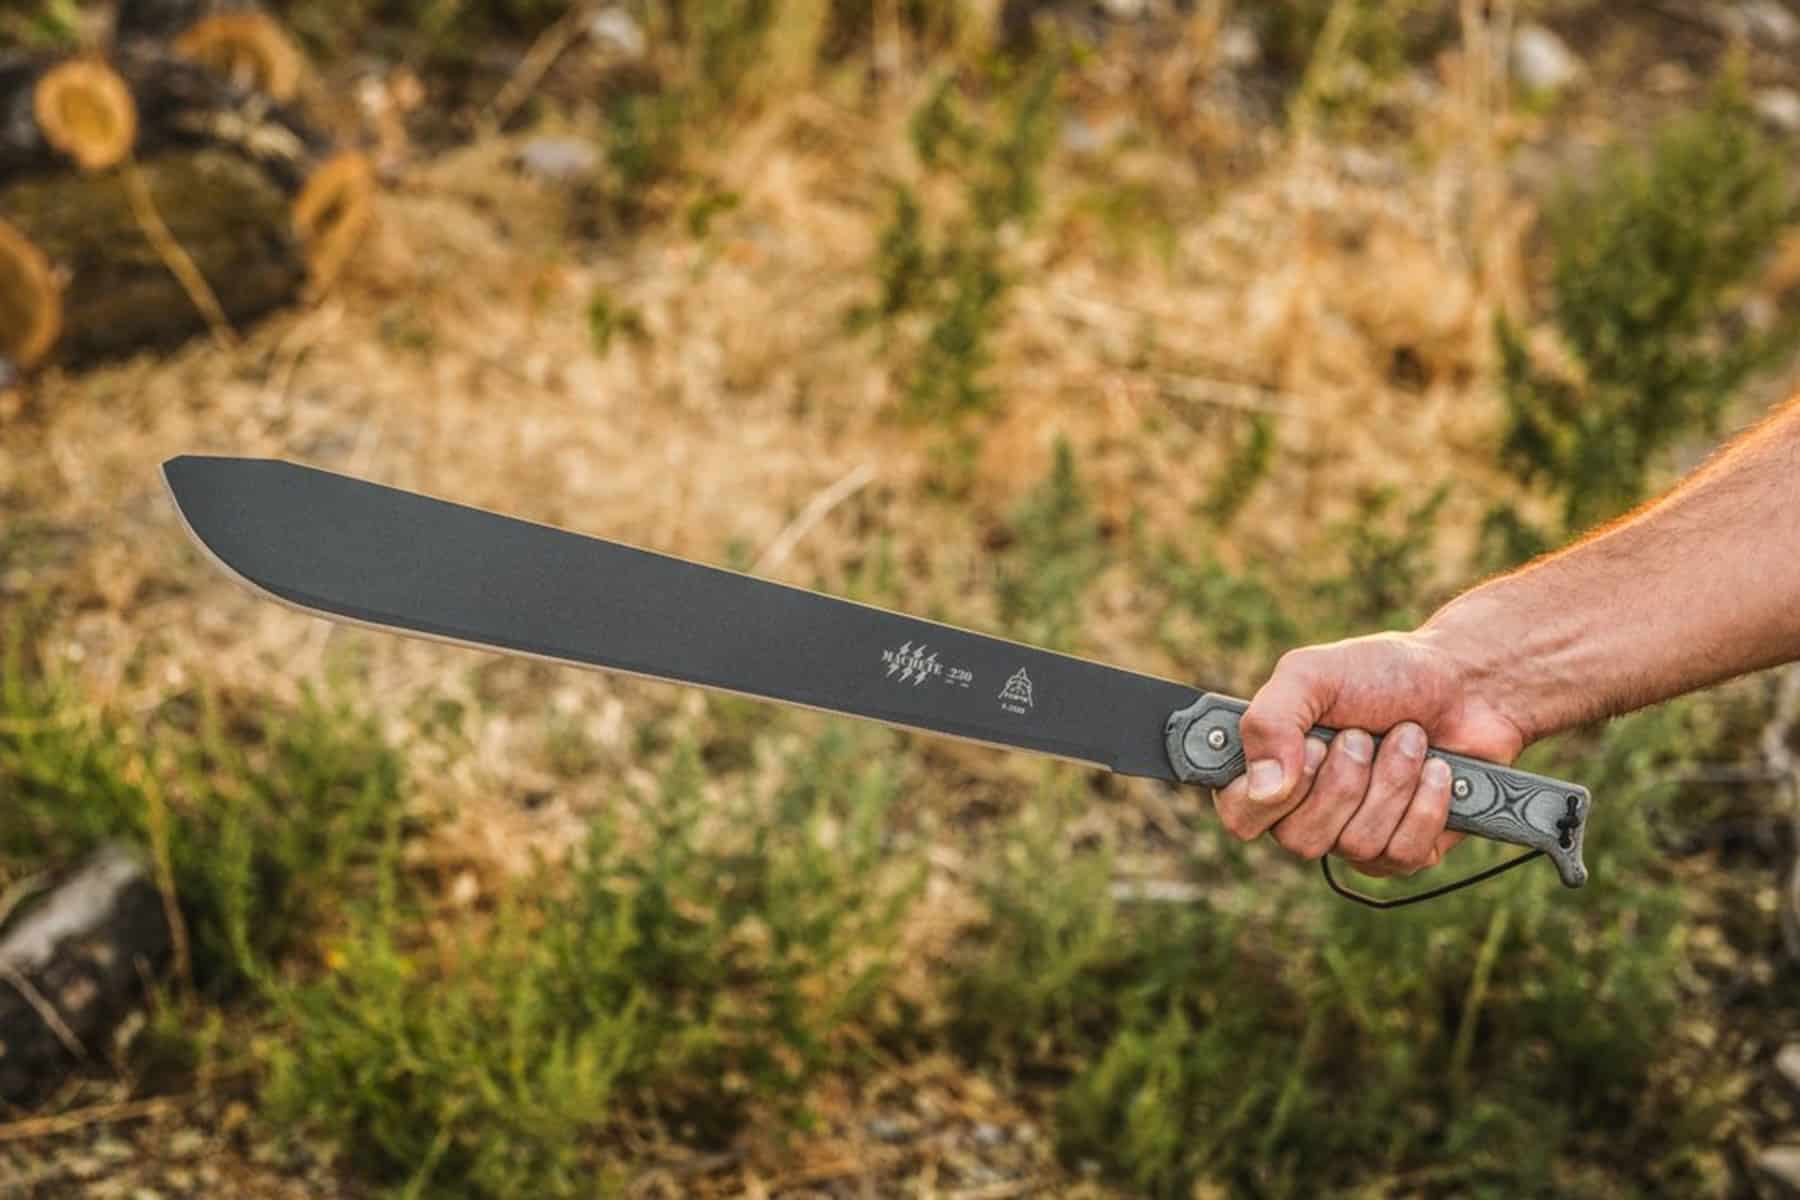 This is the cover photo for our Best Machetes article. It features a man's arm holding a metal machete with grass and trees in the background.